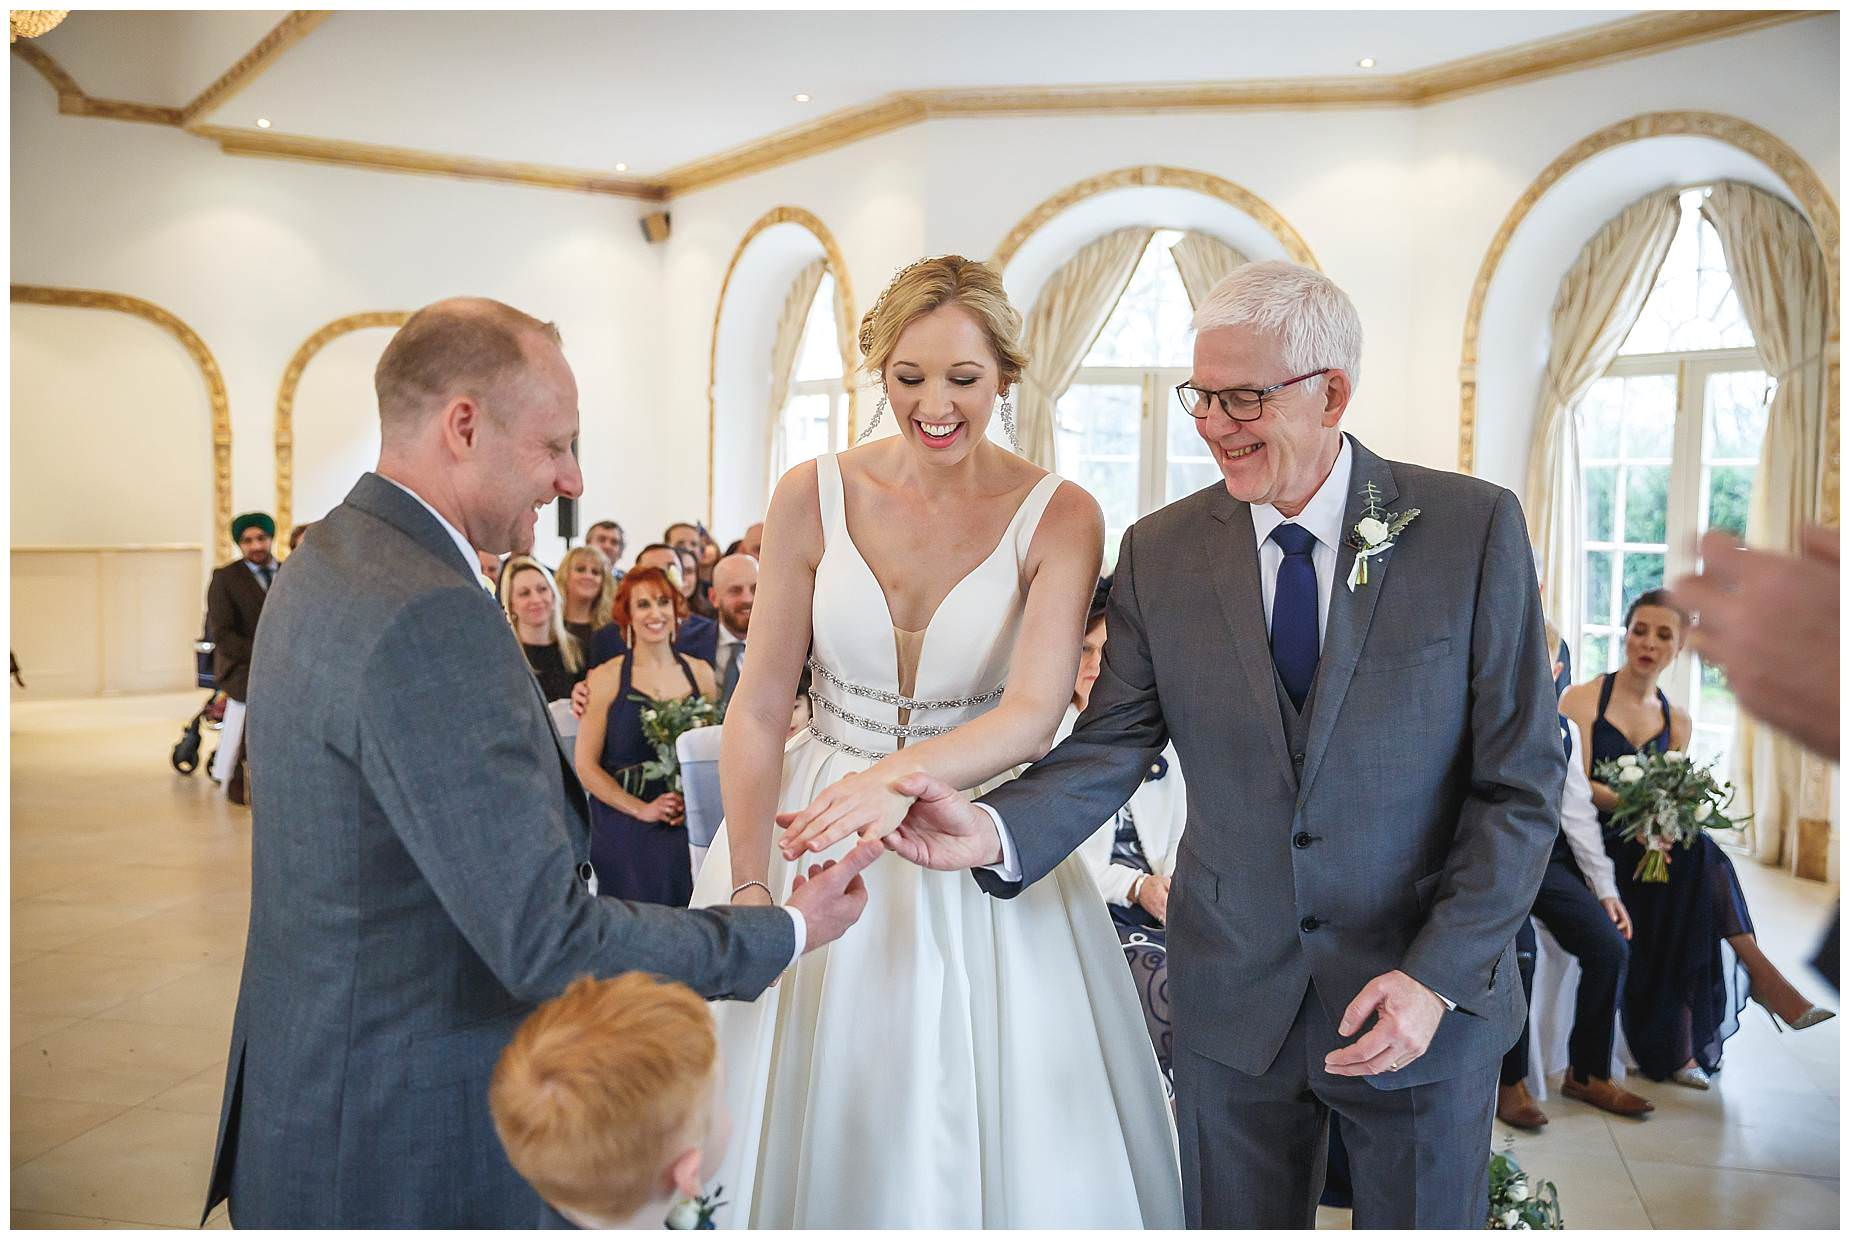 Dad gives bride away at Northbrook Park